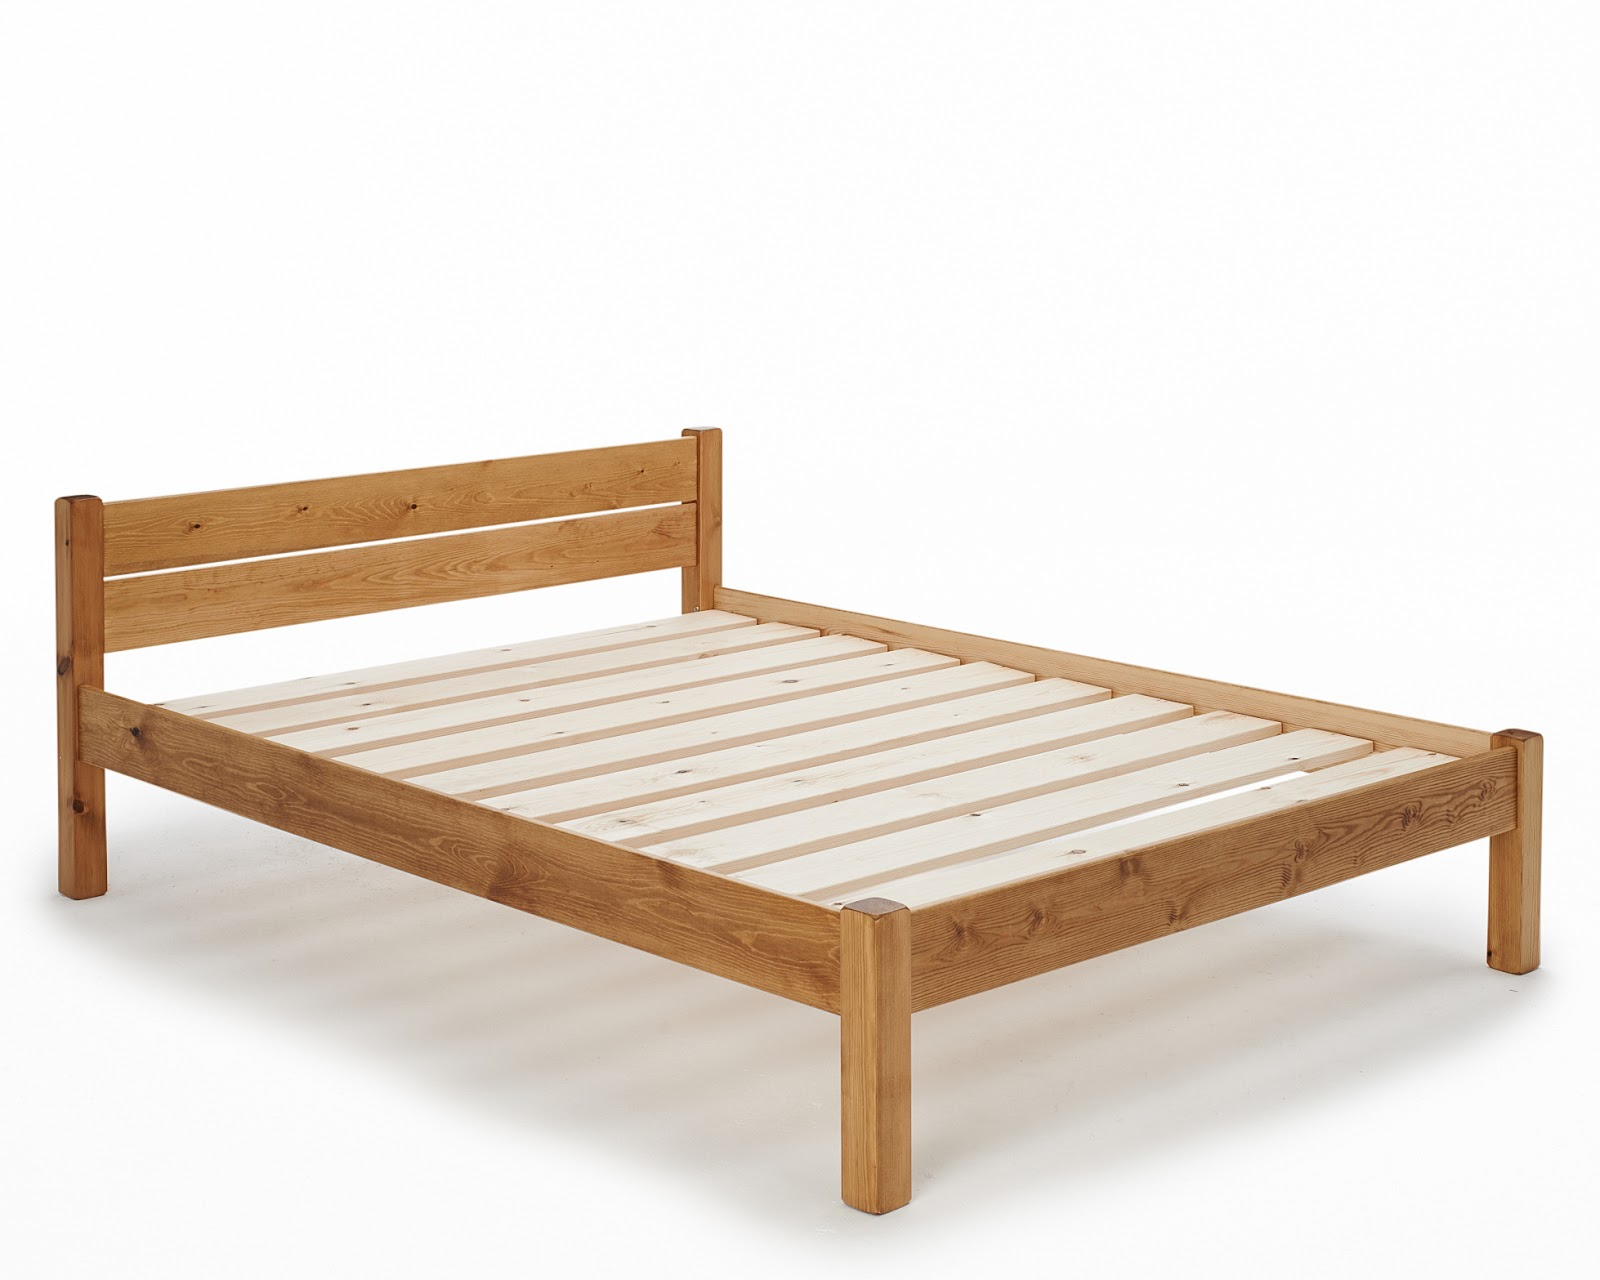 Bed Frames For Foam Matress